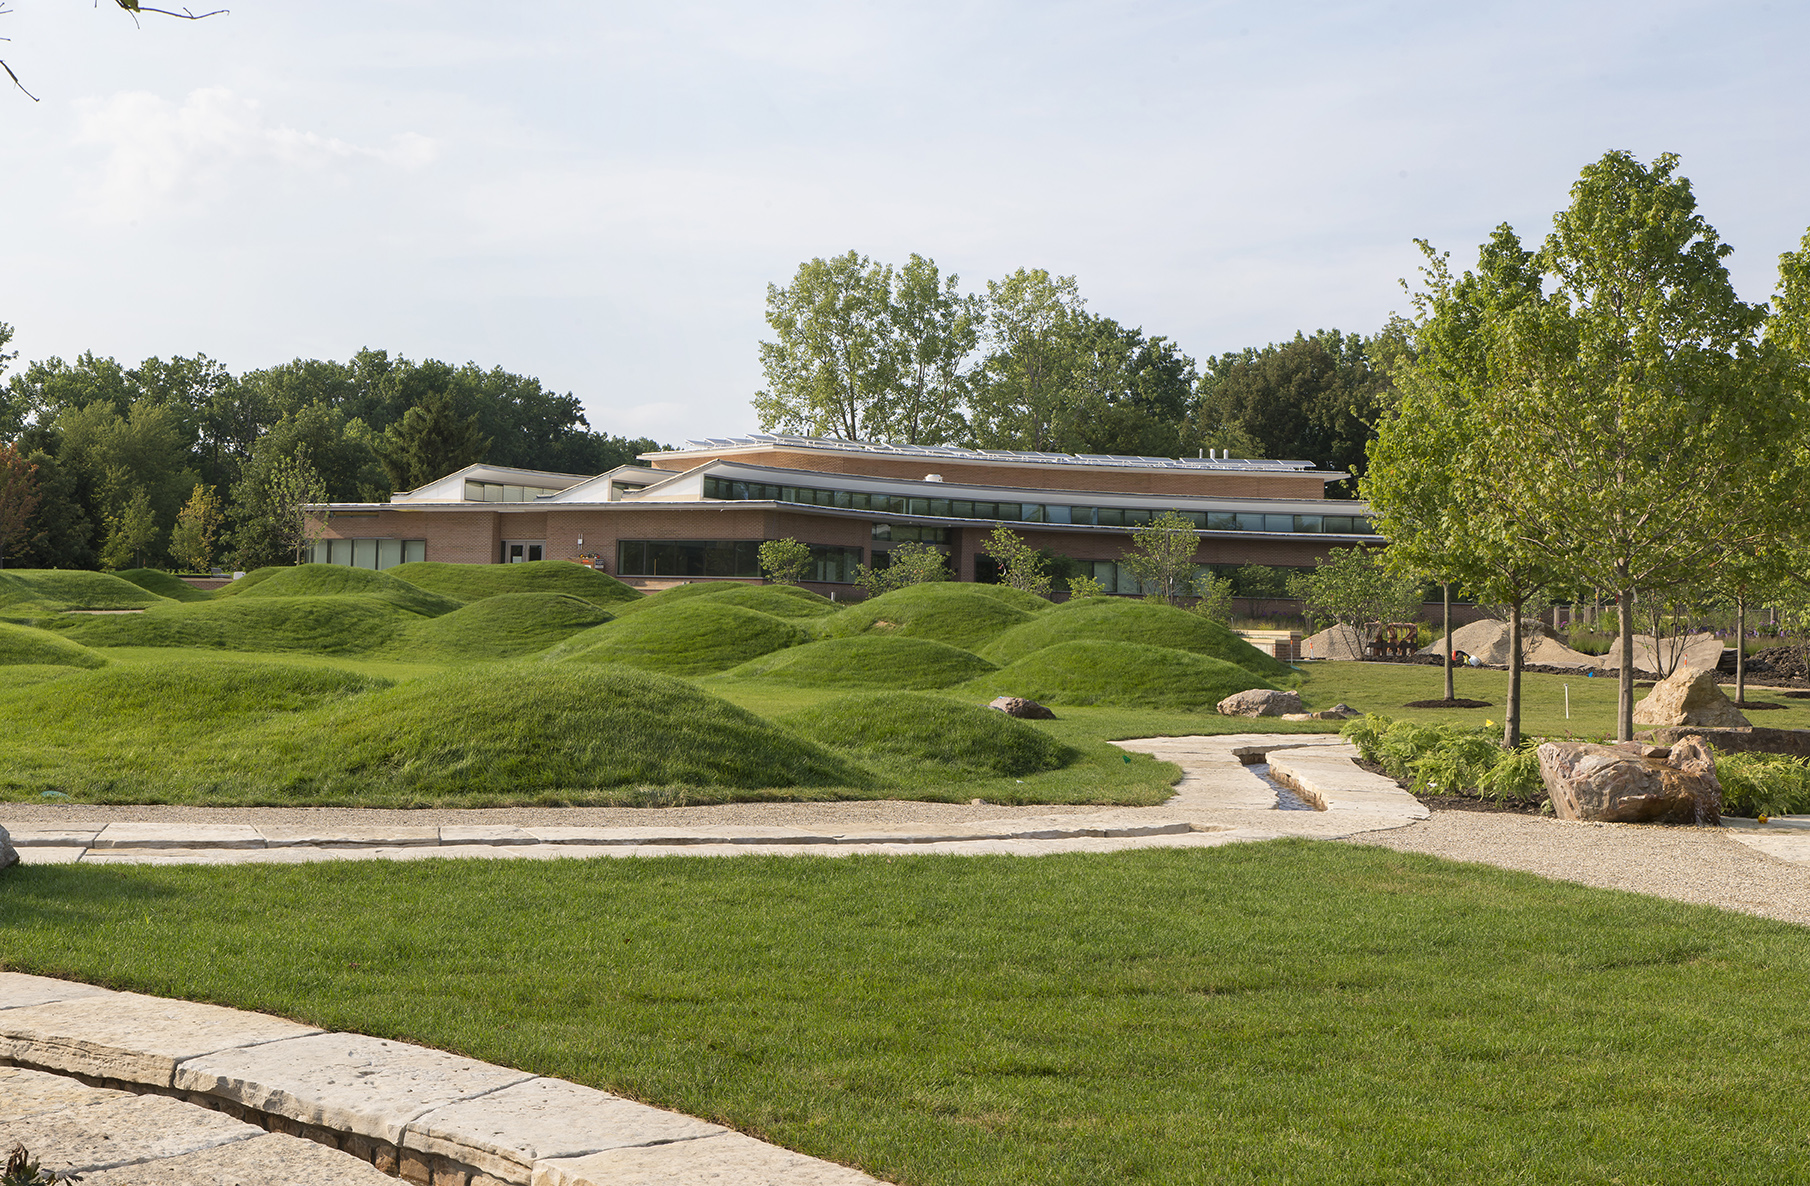 PHOTO: Regenstein Learning Campus